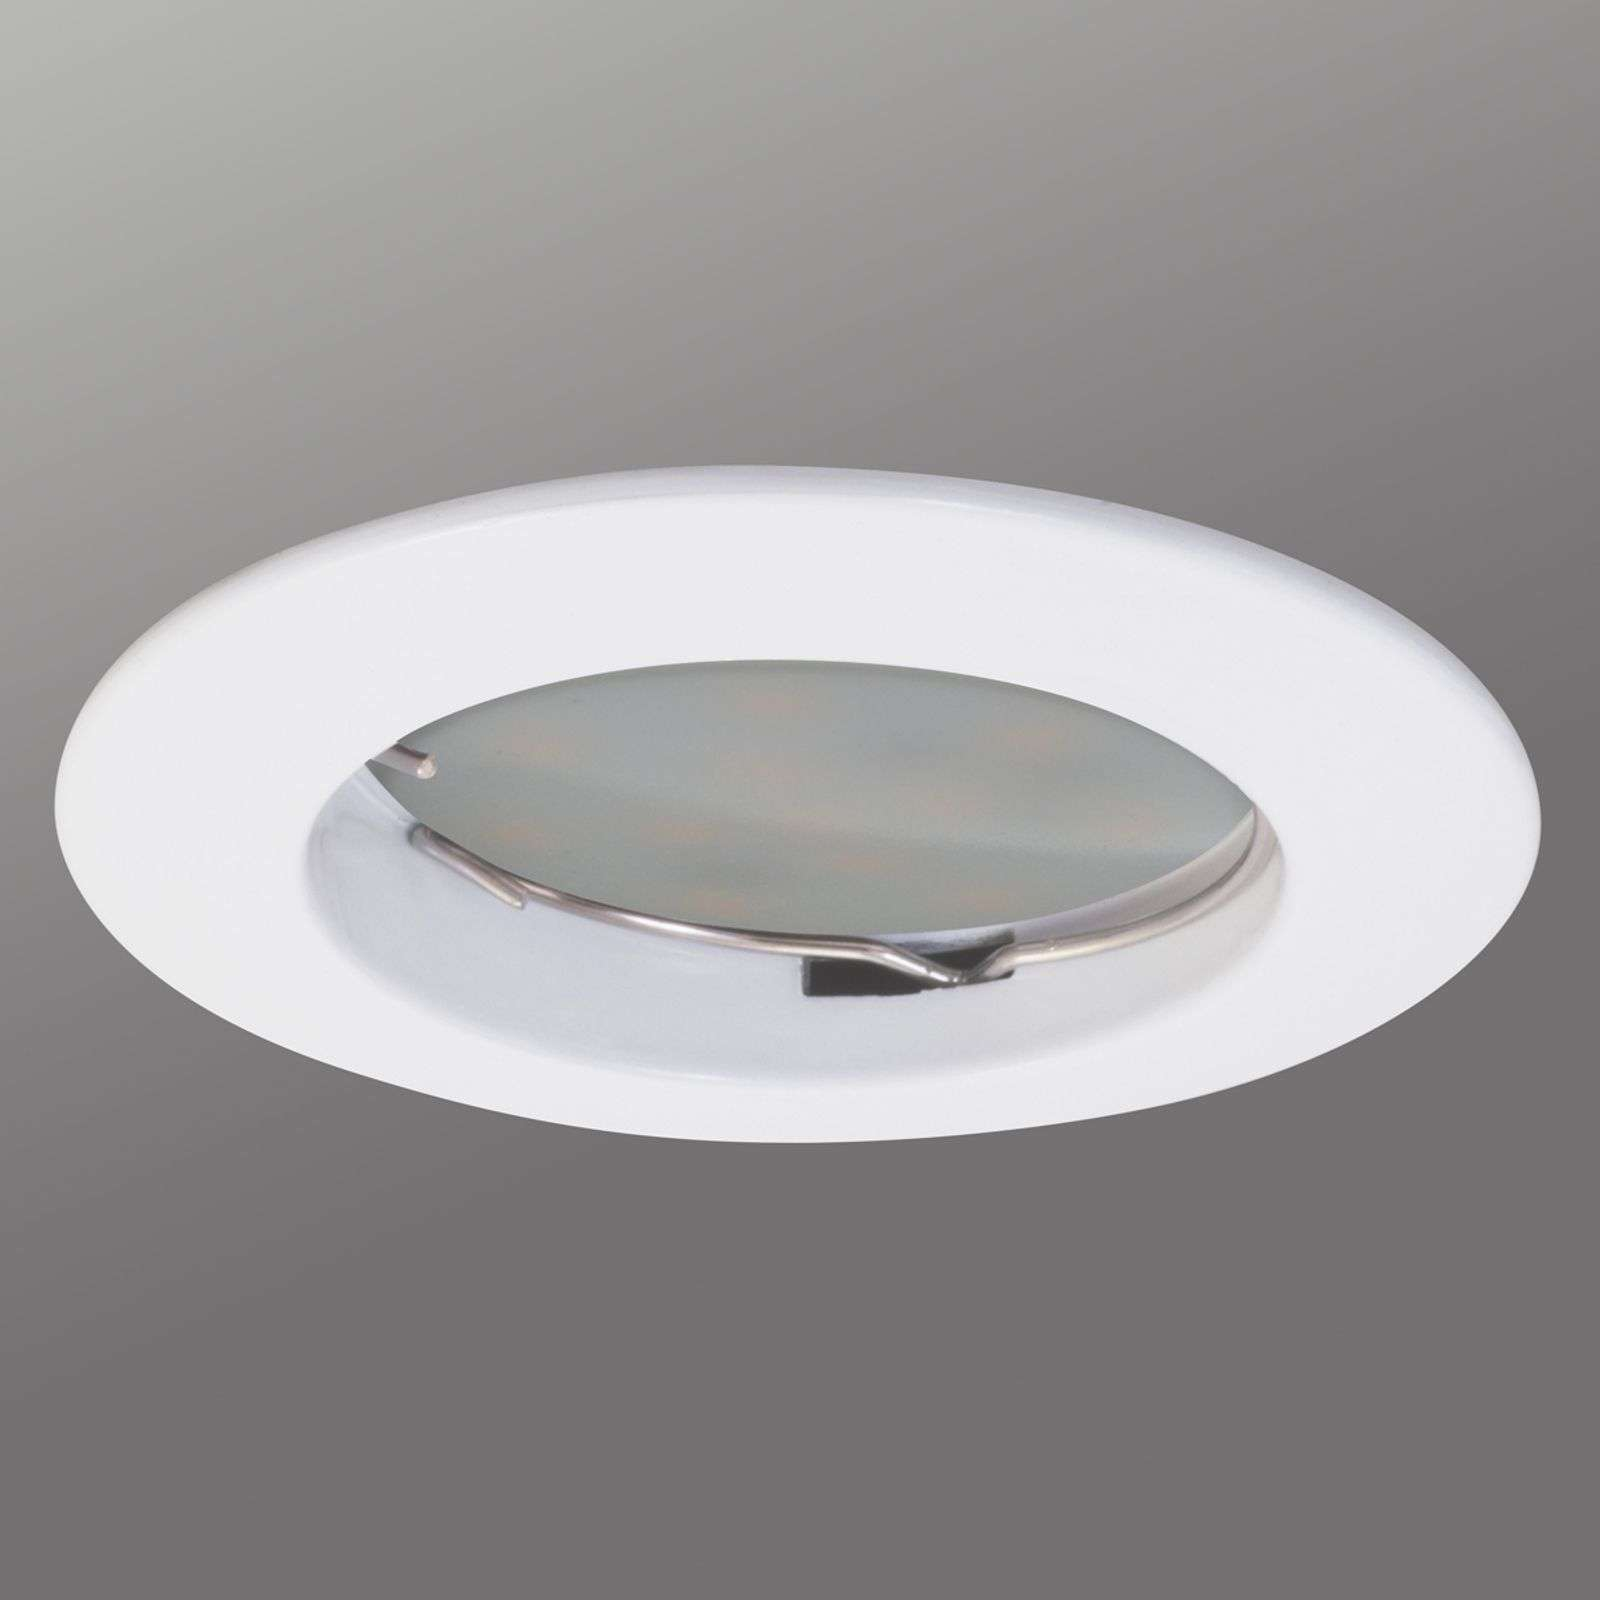 Downlight DIM Flat - LED recessed spot with HD-LED